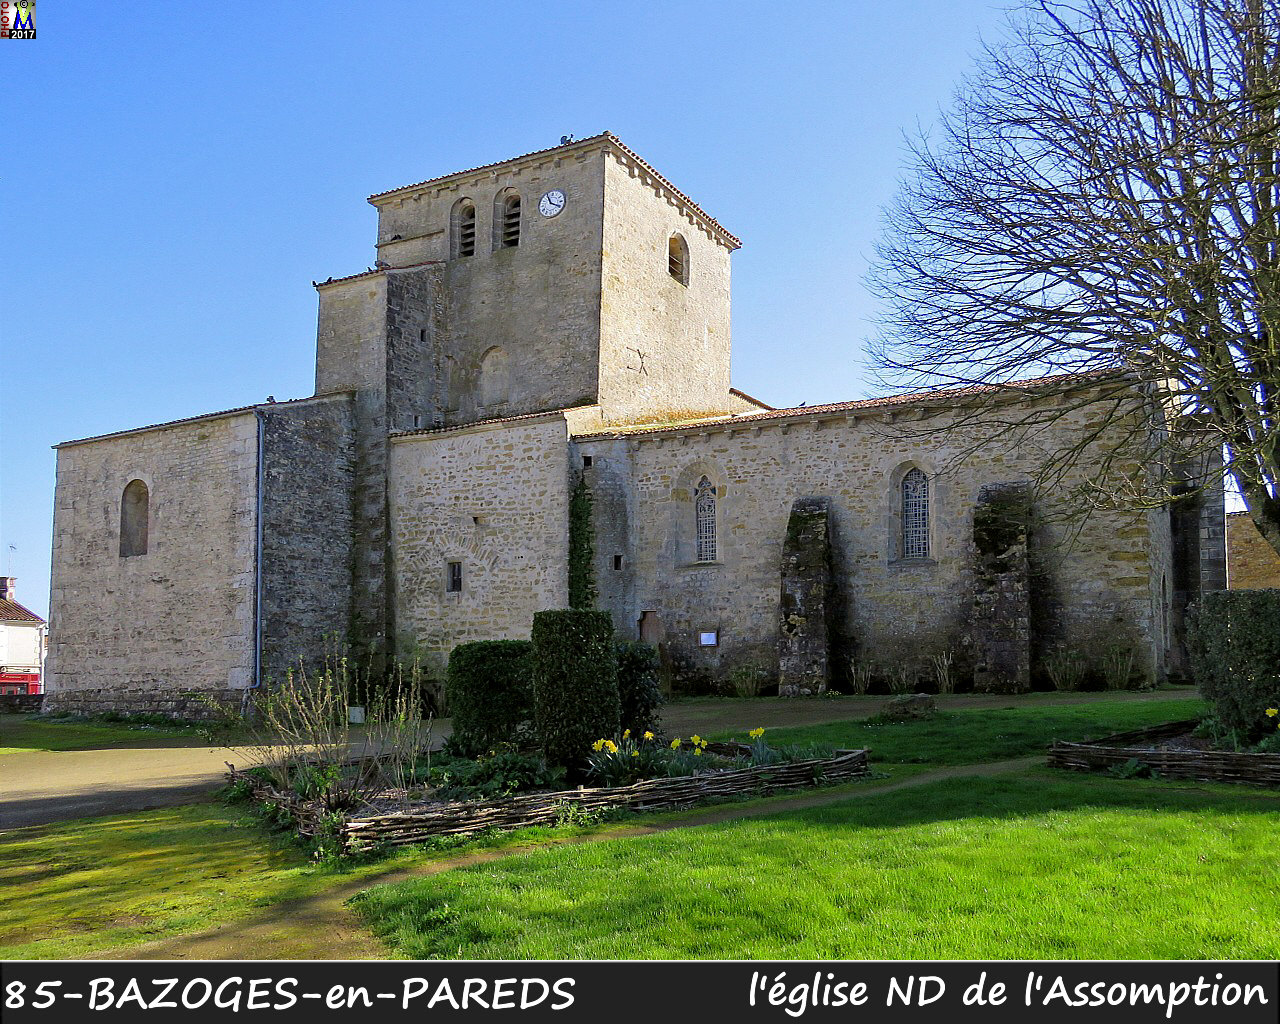 85BAZOGES-PAREDS_eglise_1000.jpg